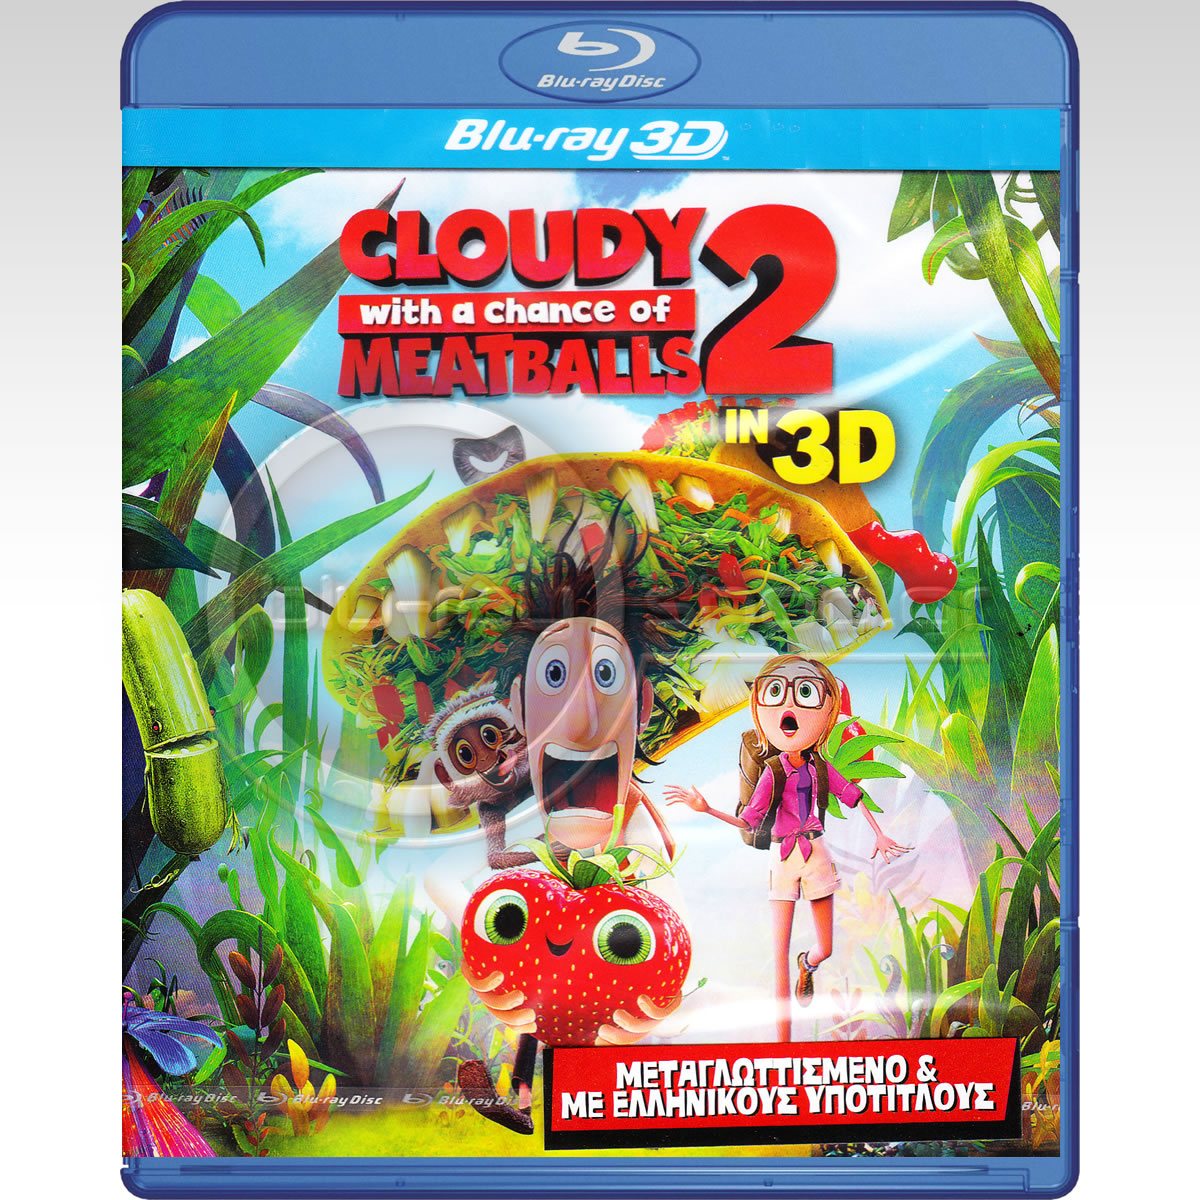 CLOUDY WITH A CHANCE OF MEATBALLS 2: REVENGE OF THE LEFTOVERS 3D - ΒΡΕΧΕΙ ΚΕΦΤΕΔΕΣ 2 3D (BLU-RAY 3D) & ΣΤΑ ΕΛΛΗΝΙΚΑ